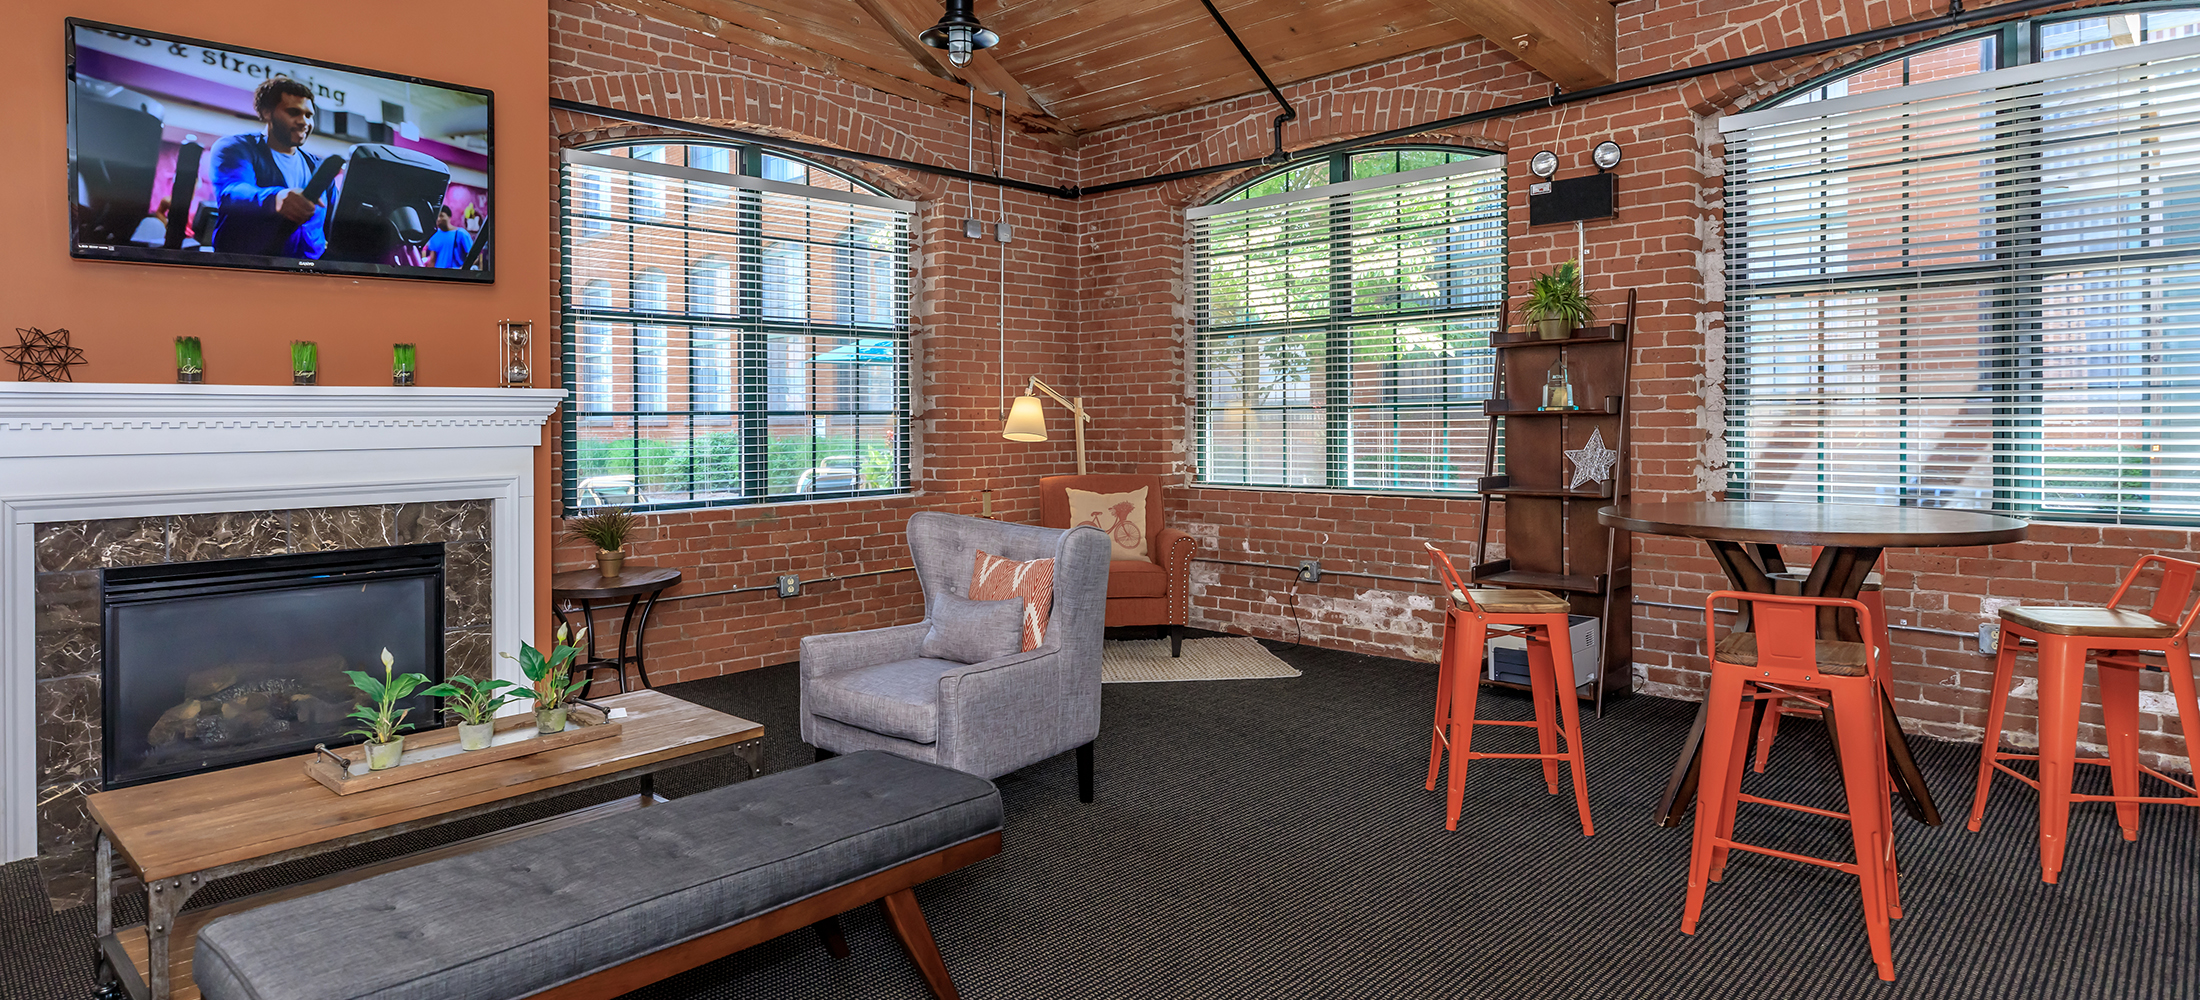 Lofts at the Mills - Apartments in Manchester, CT